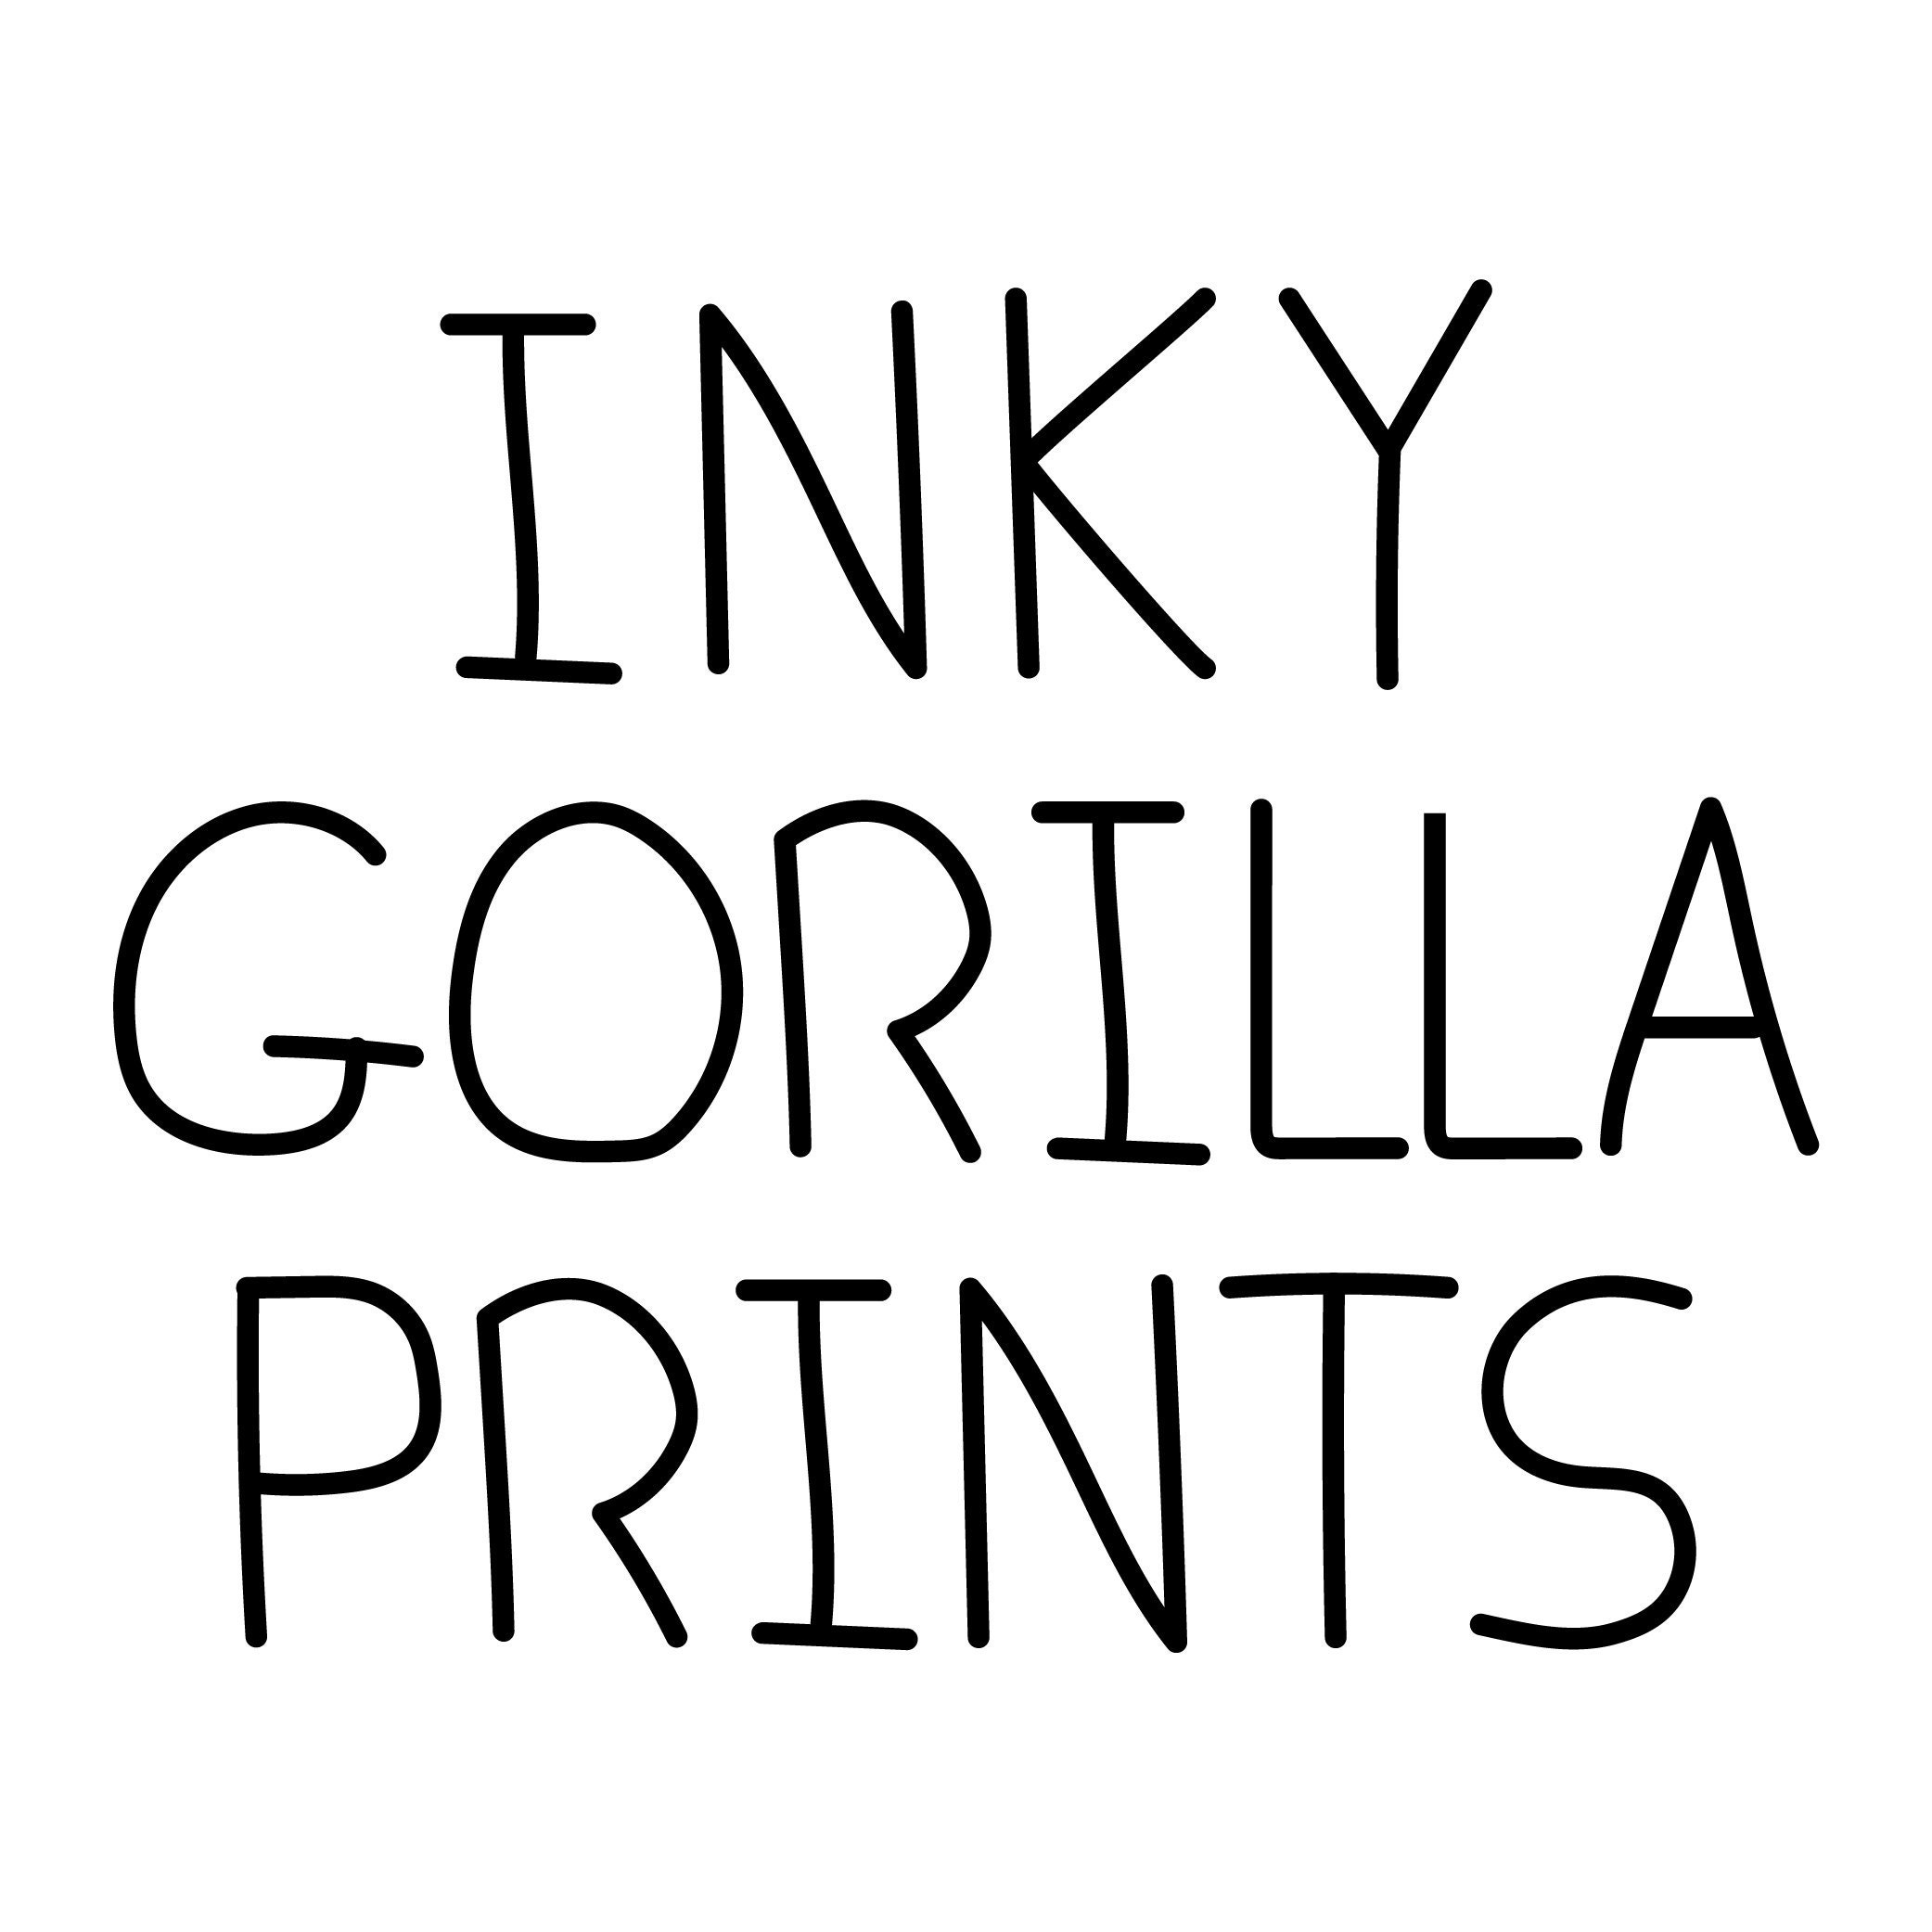 inky gorilla posters prints to brighten any by inkygorilla